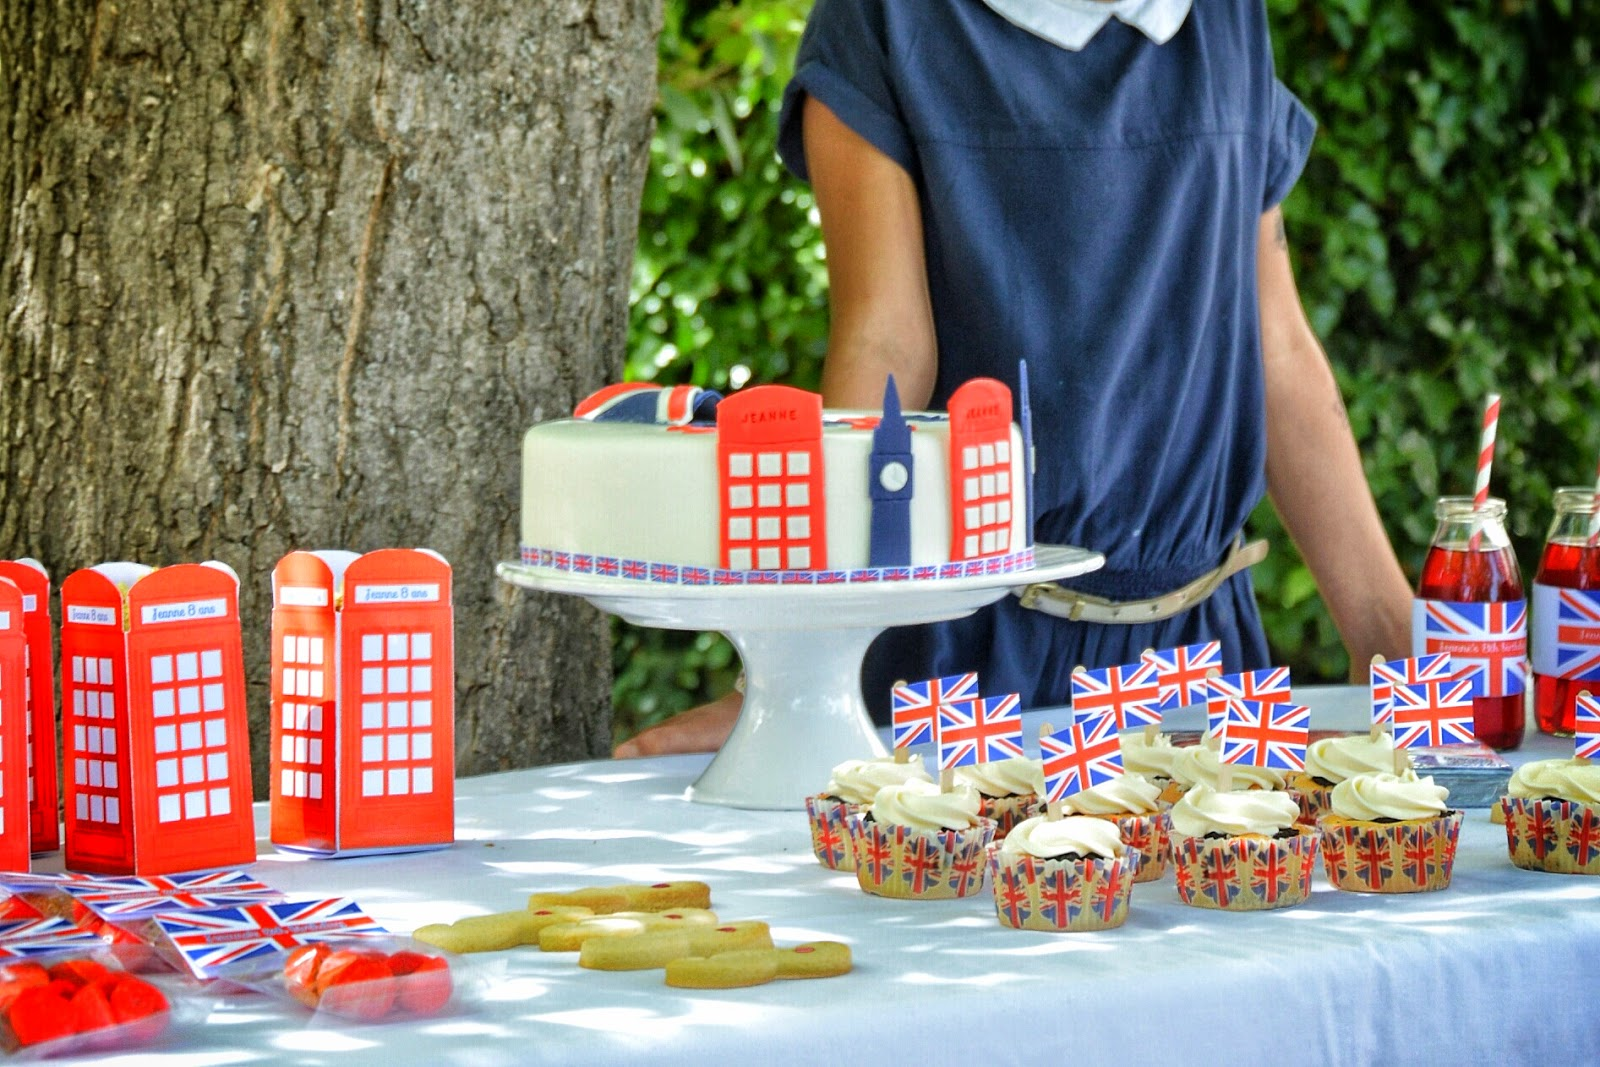 table gourmande avec gateau 1 etage decore theme londres